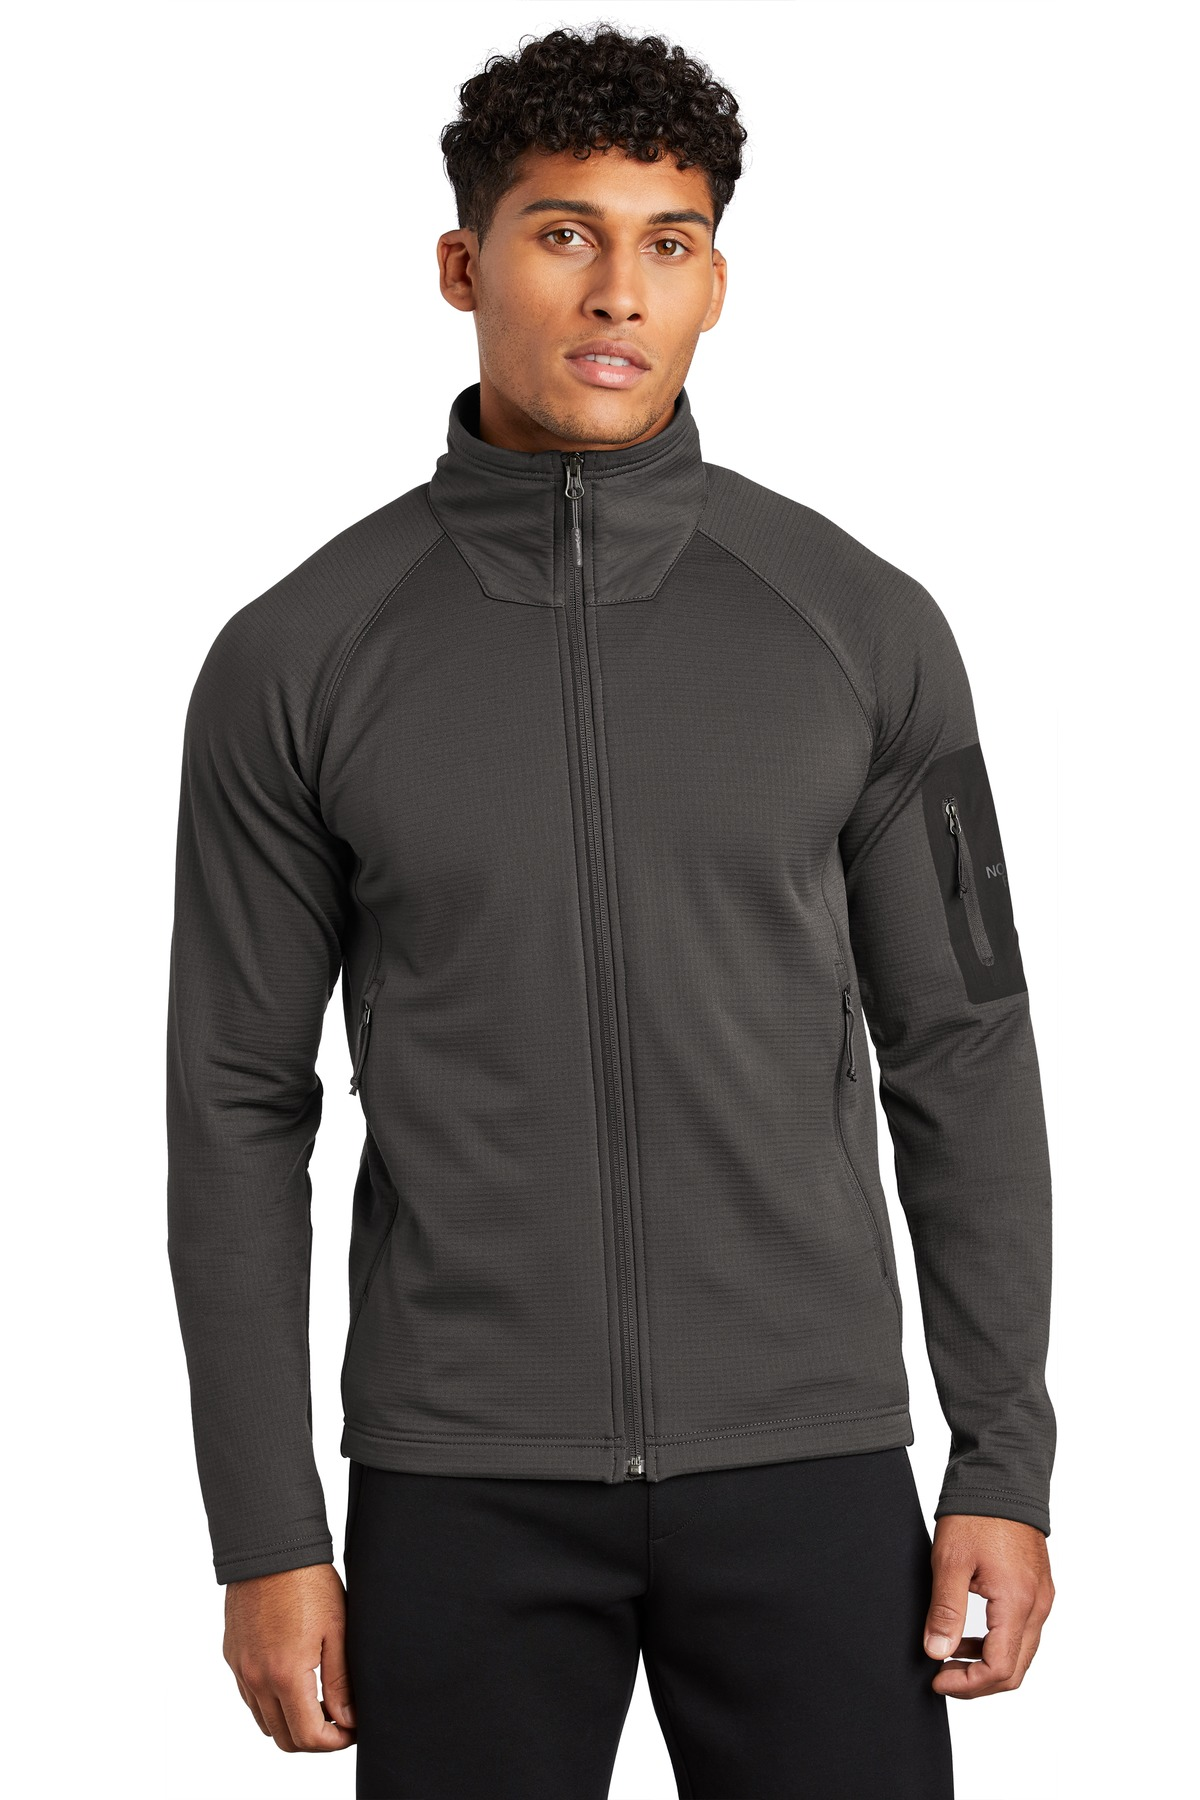 The North Face  ®  Mountain Peaks Full-Zip Fleece Jacket NF0A47FD - Asphalt Grey